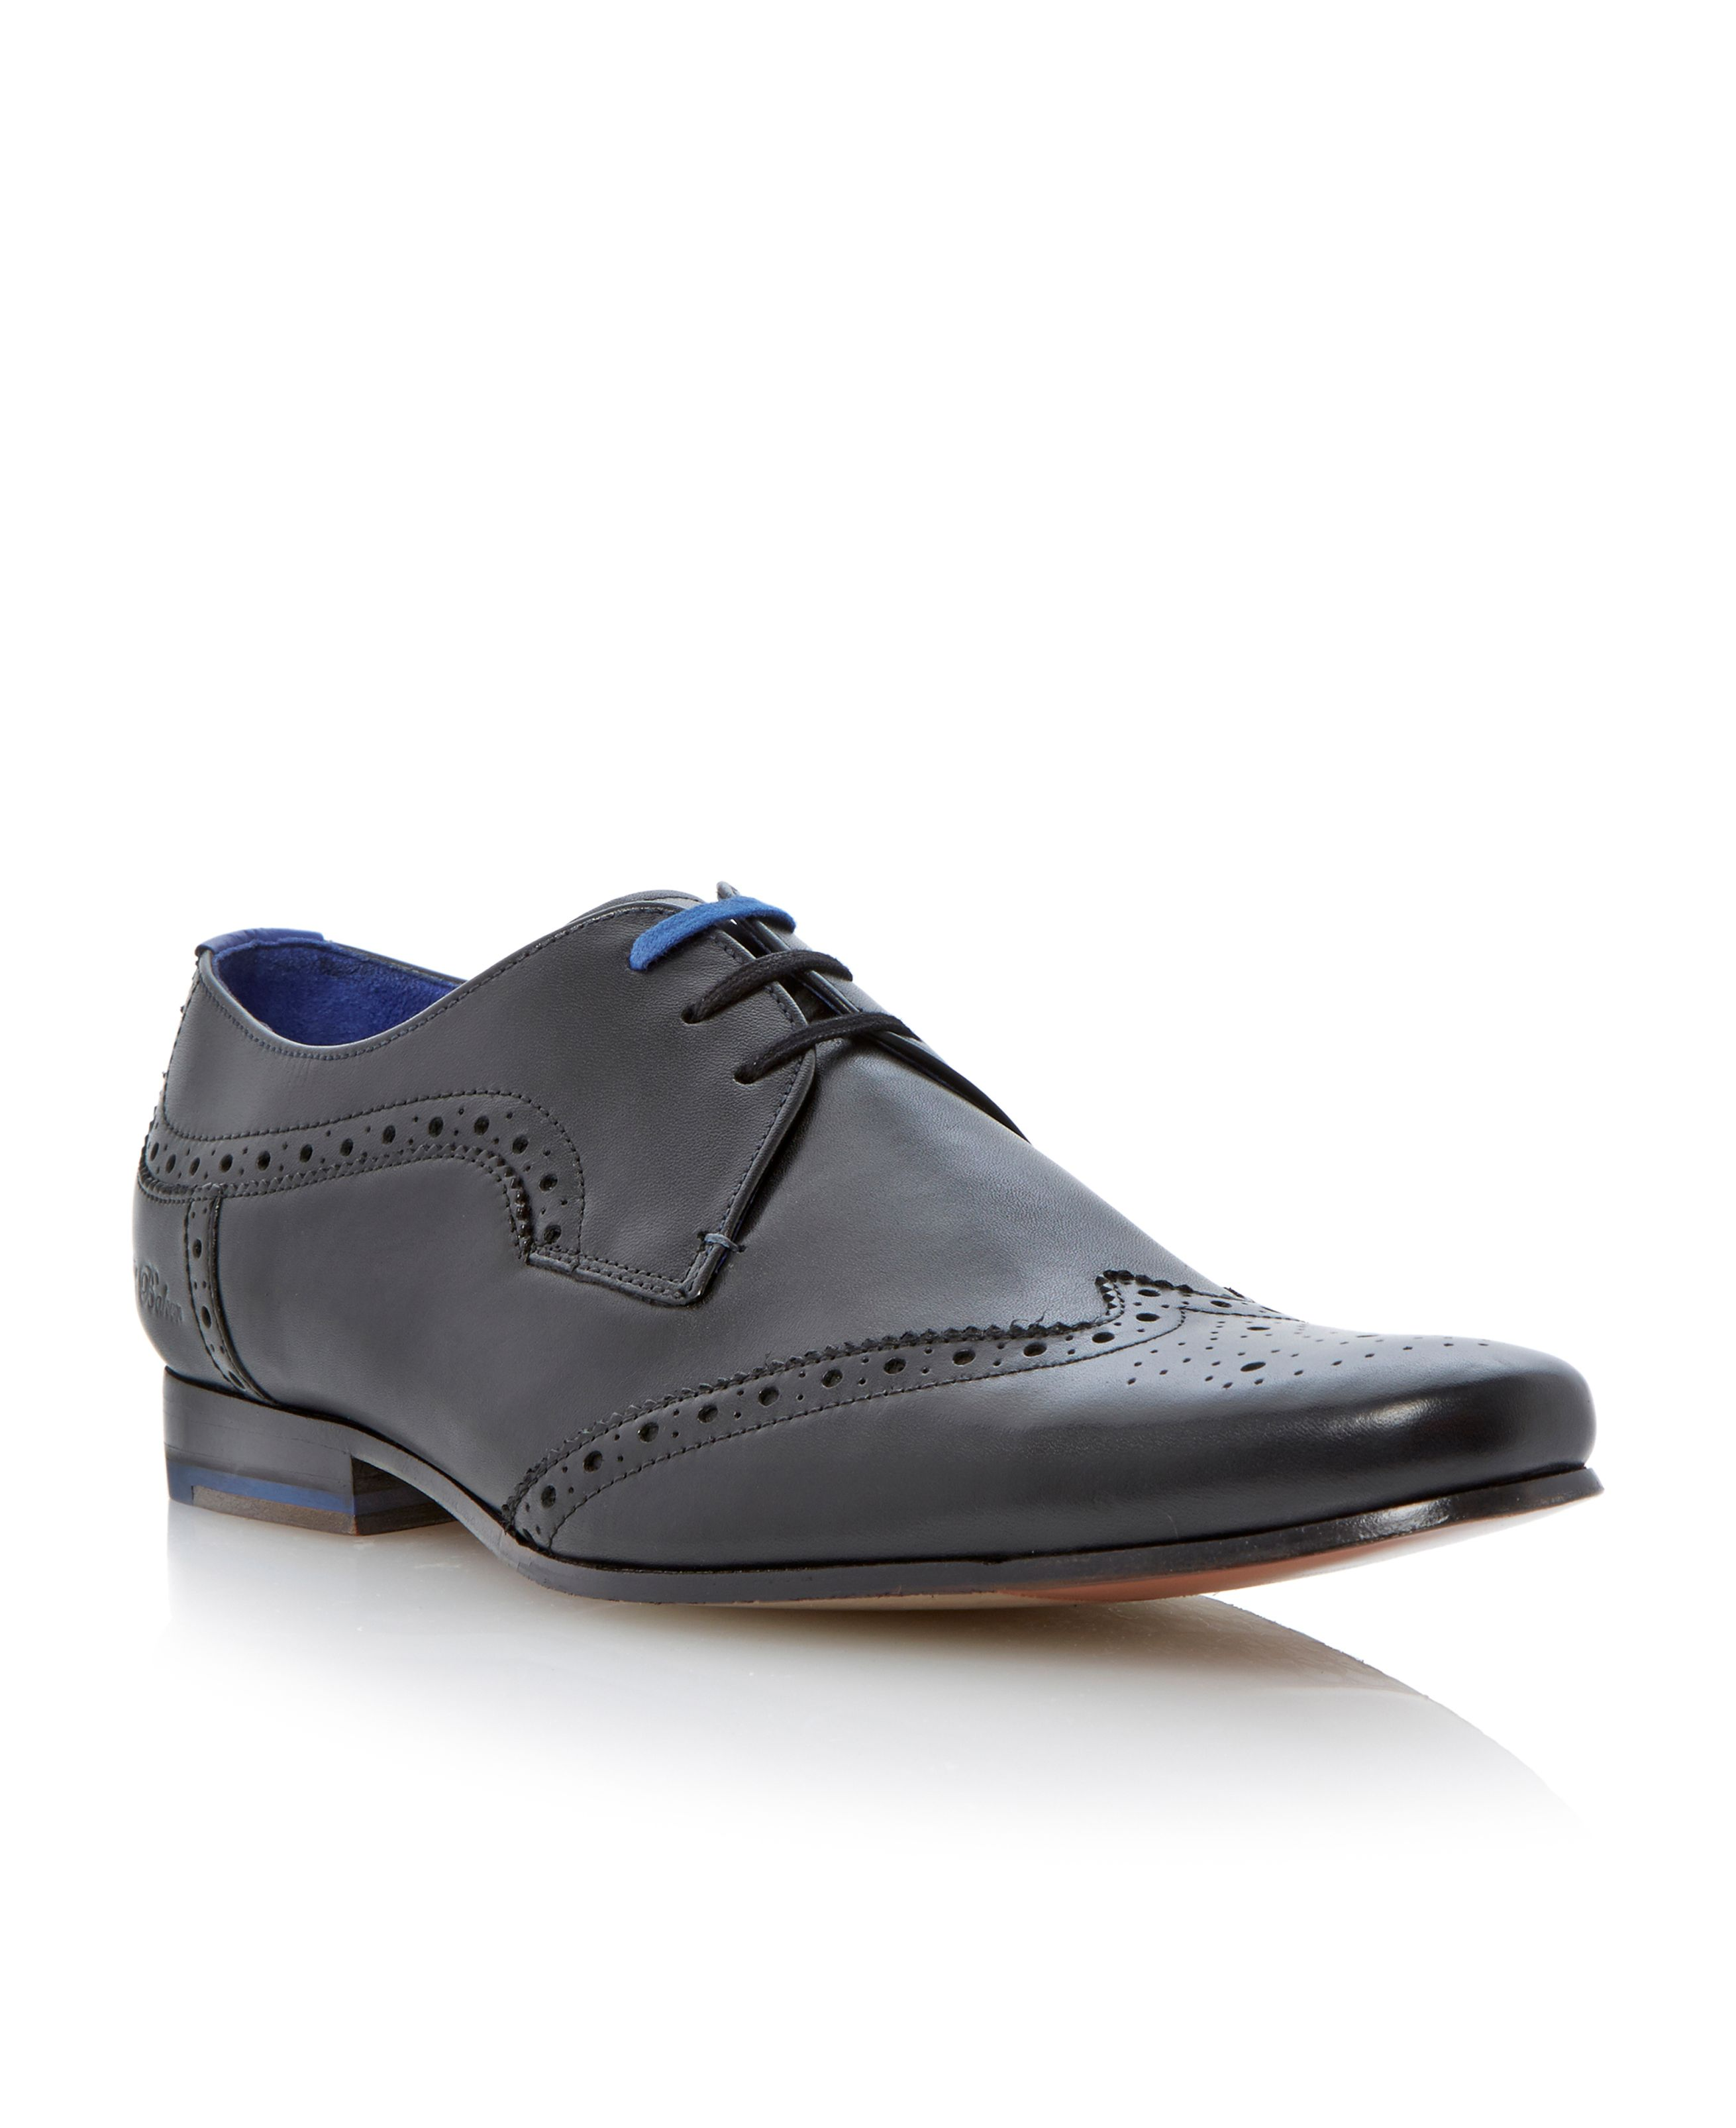 Hann brogue detail leather lace up shoe